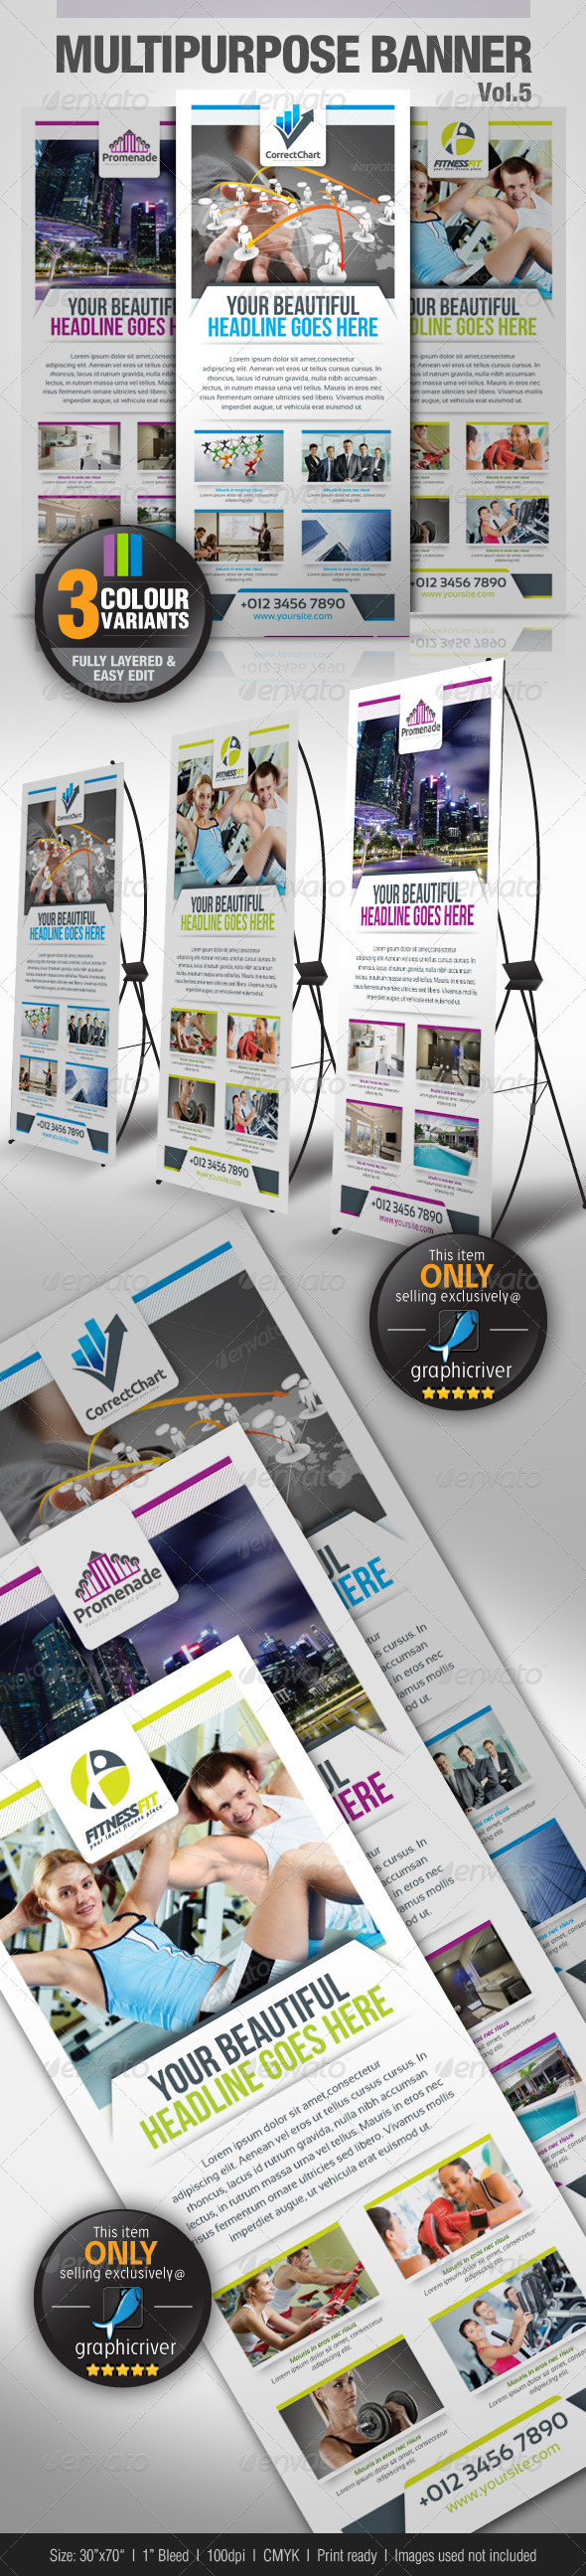 GraphicRiver Multipurpose Banner Vol.5 3047323